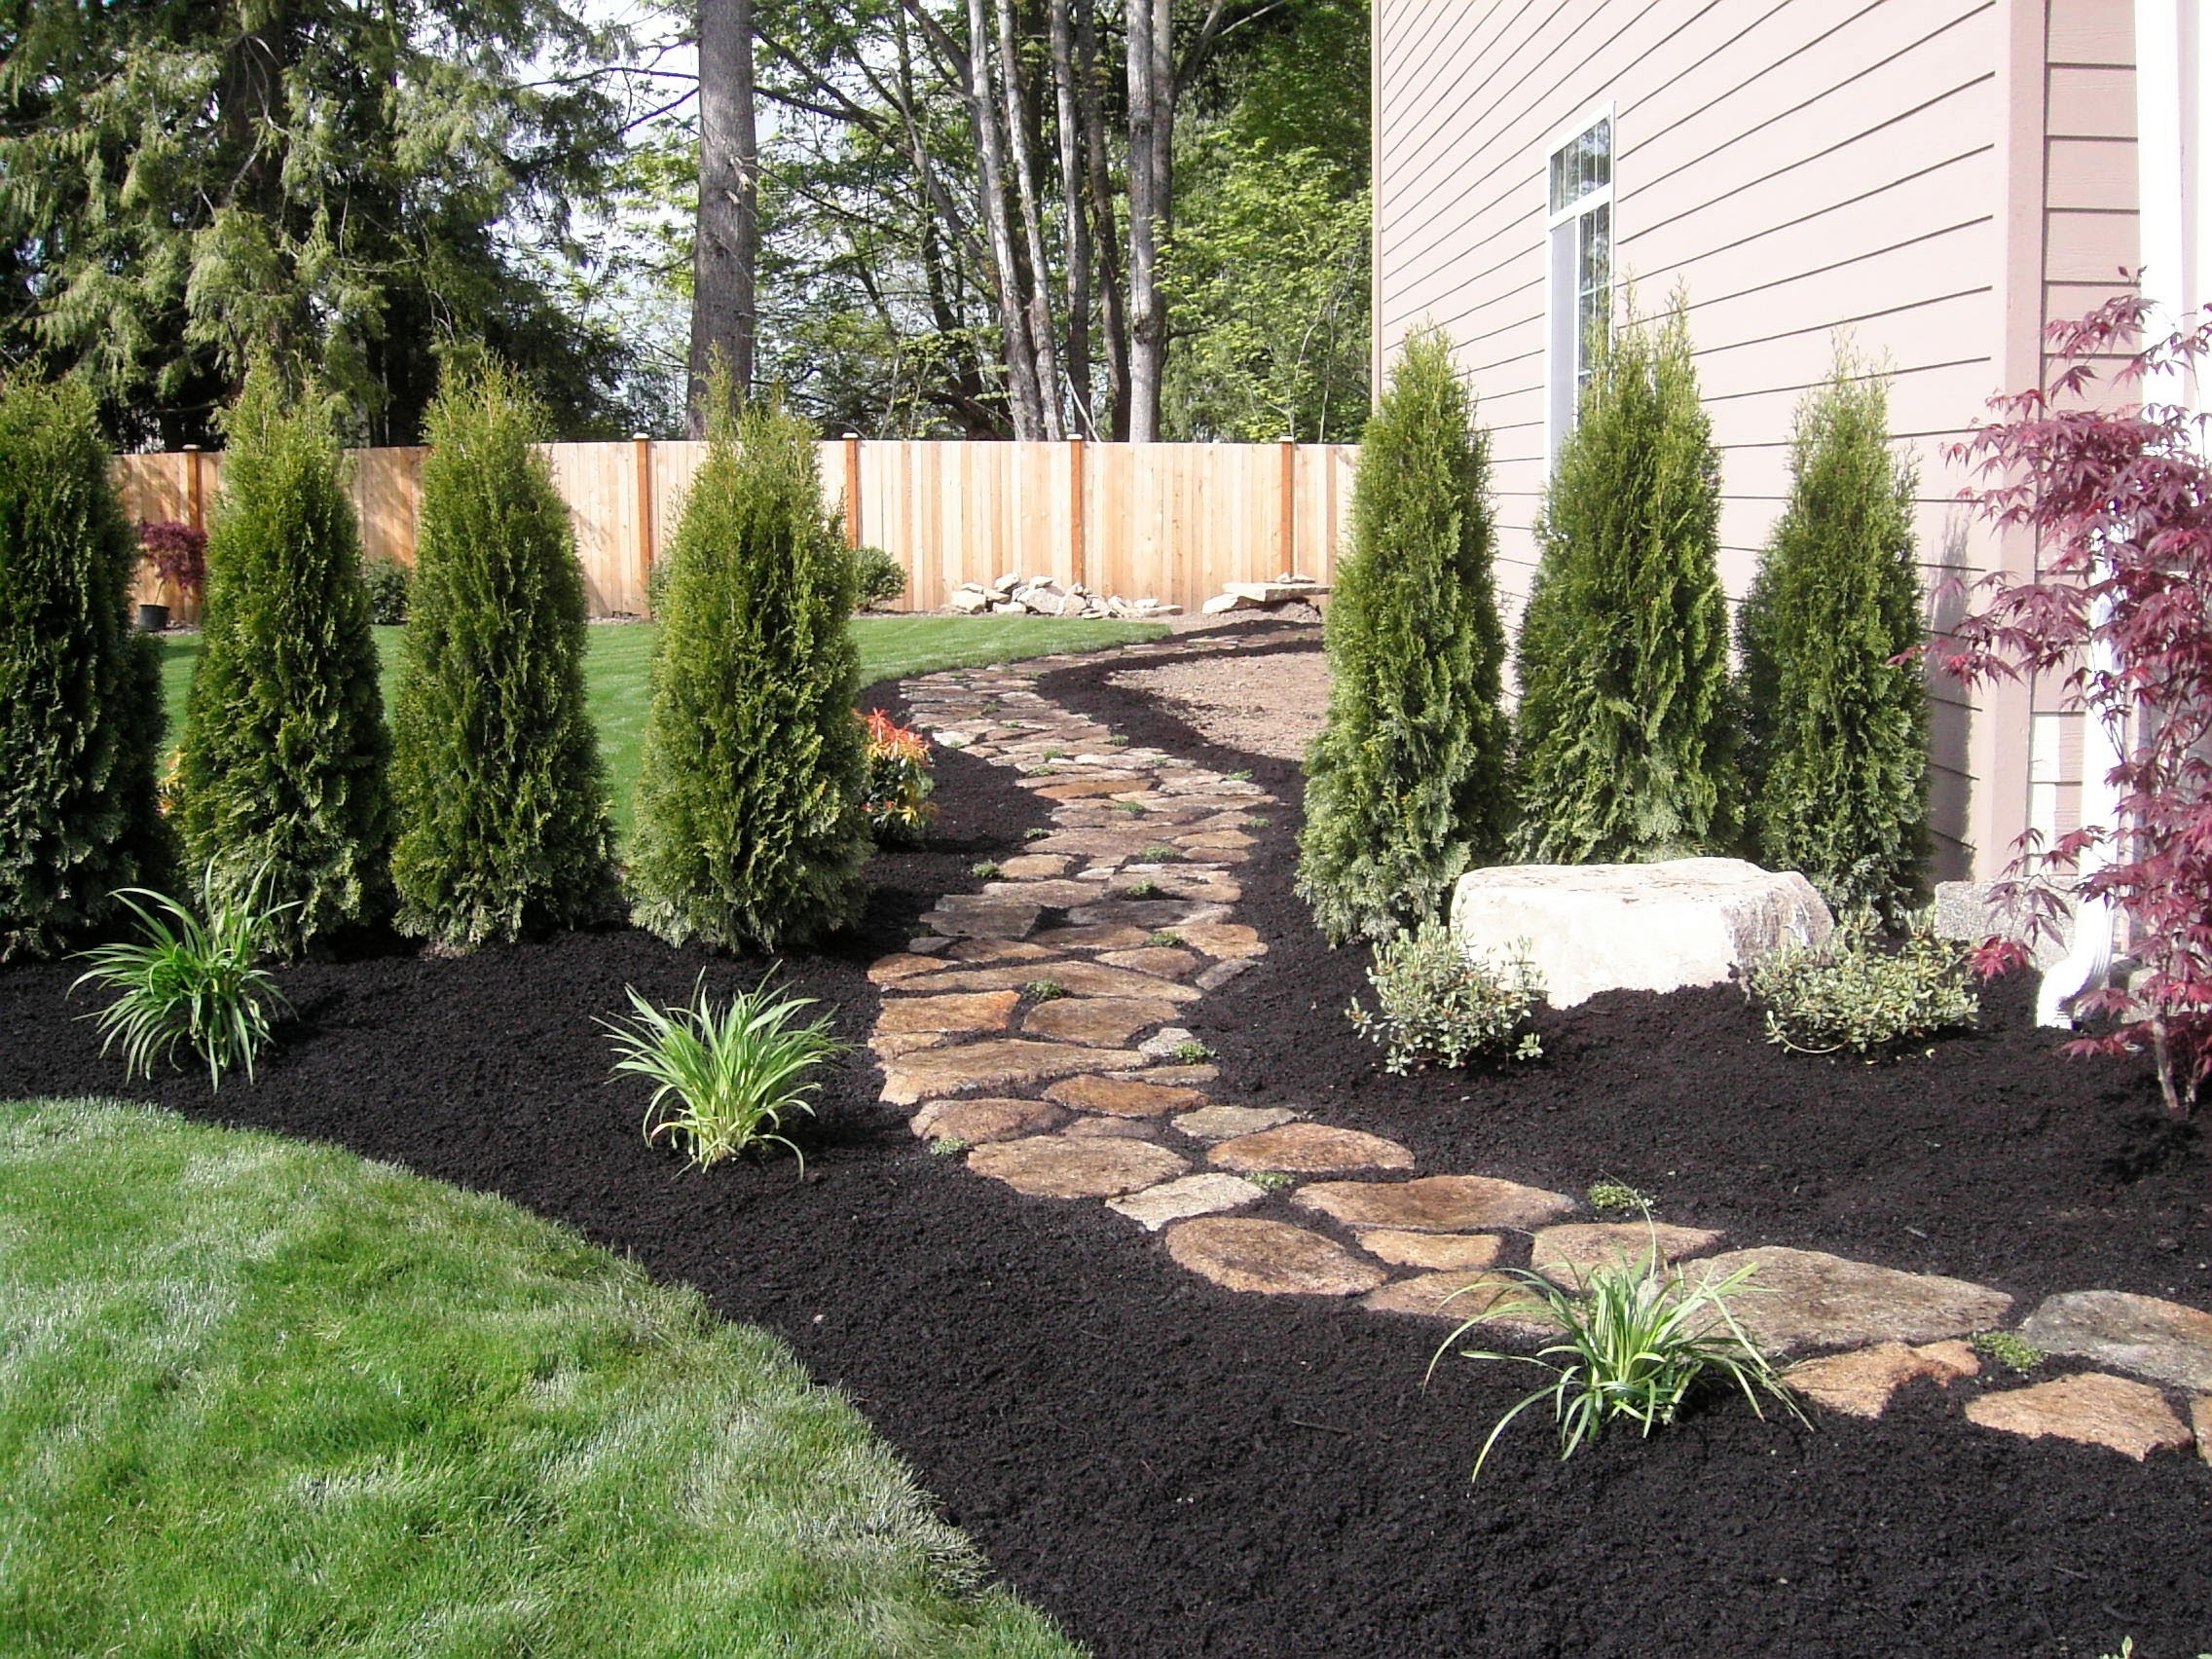 Stone walkway with beds, plants and lawn installed